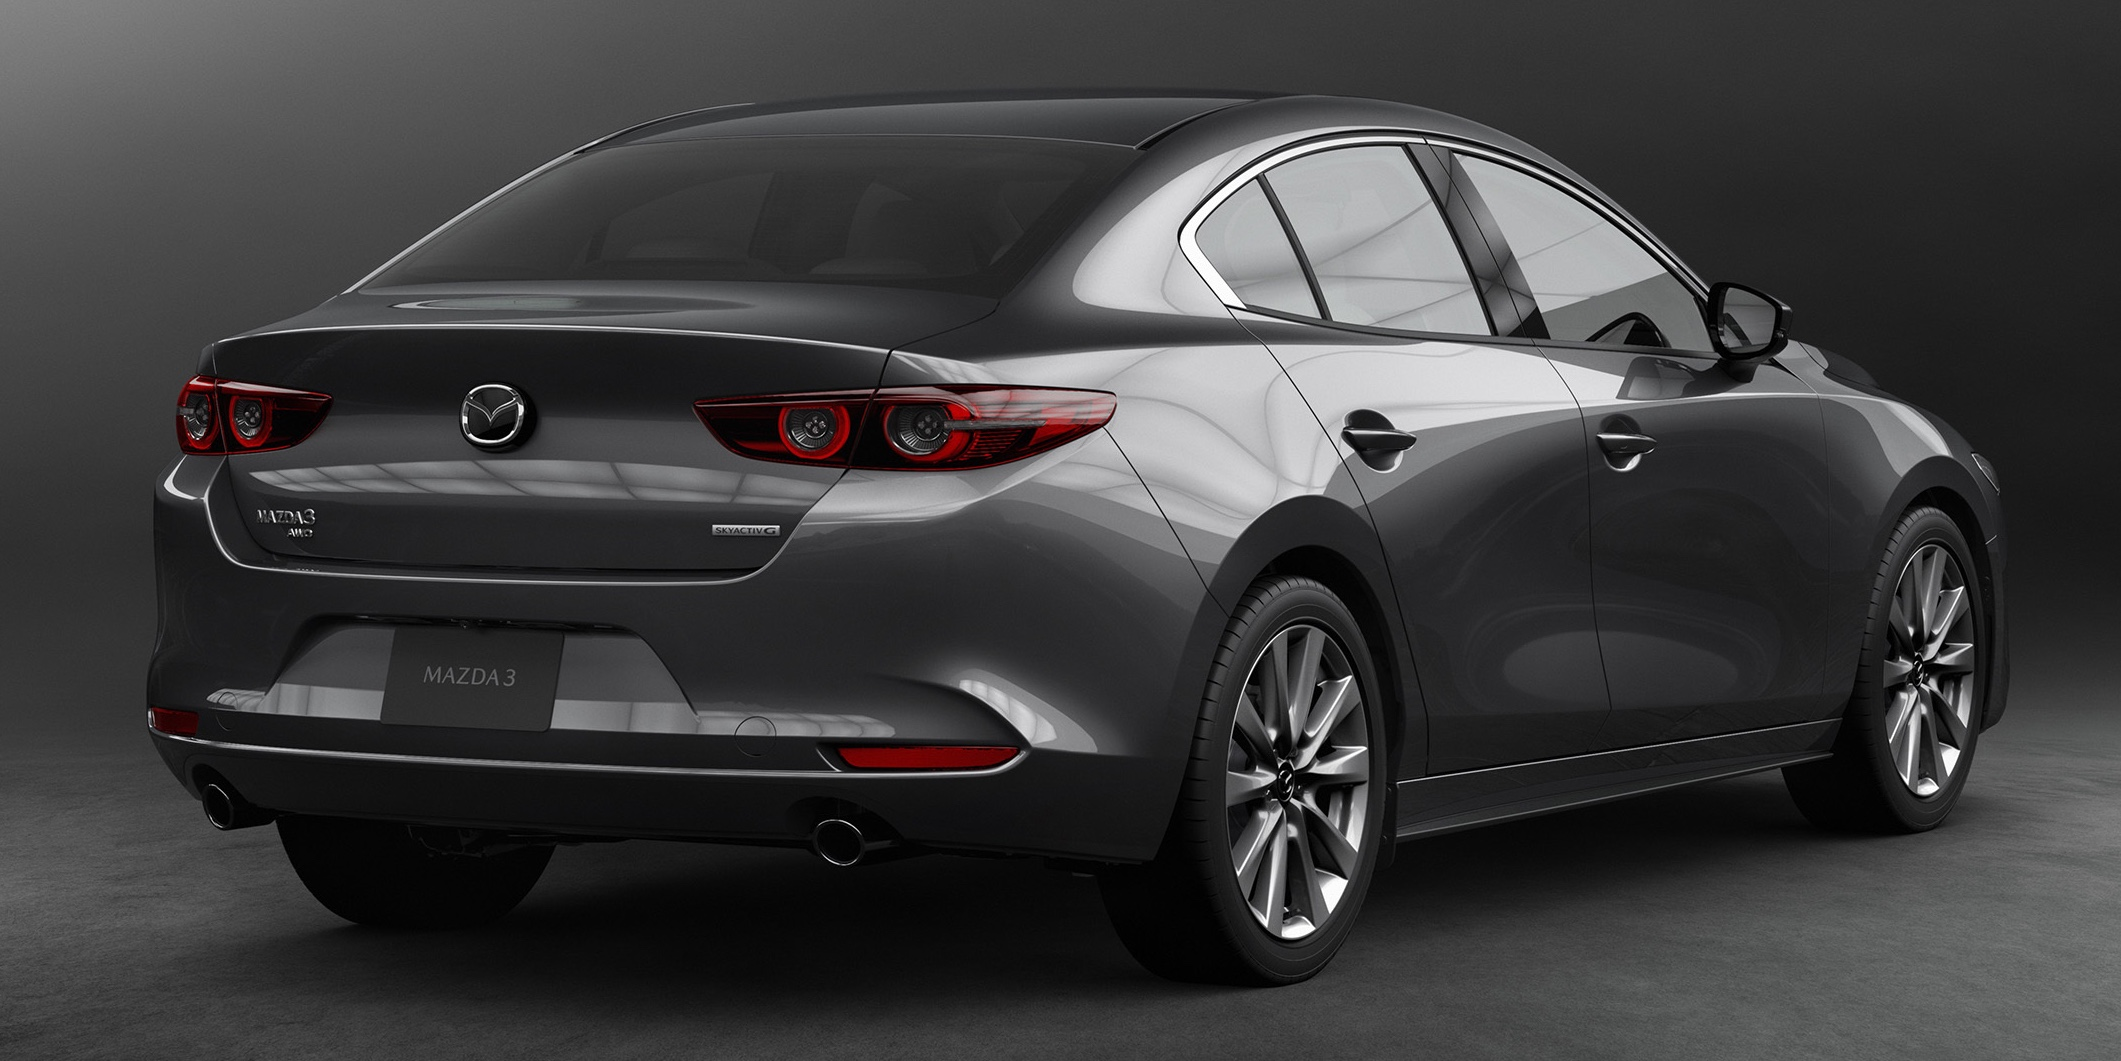 2019 mazda 3 officially revealed sedan hatchback skyactiv x hybrid gvc plus improved i. Black Bedroom Furniture Sets. Home Design Ideas